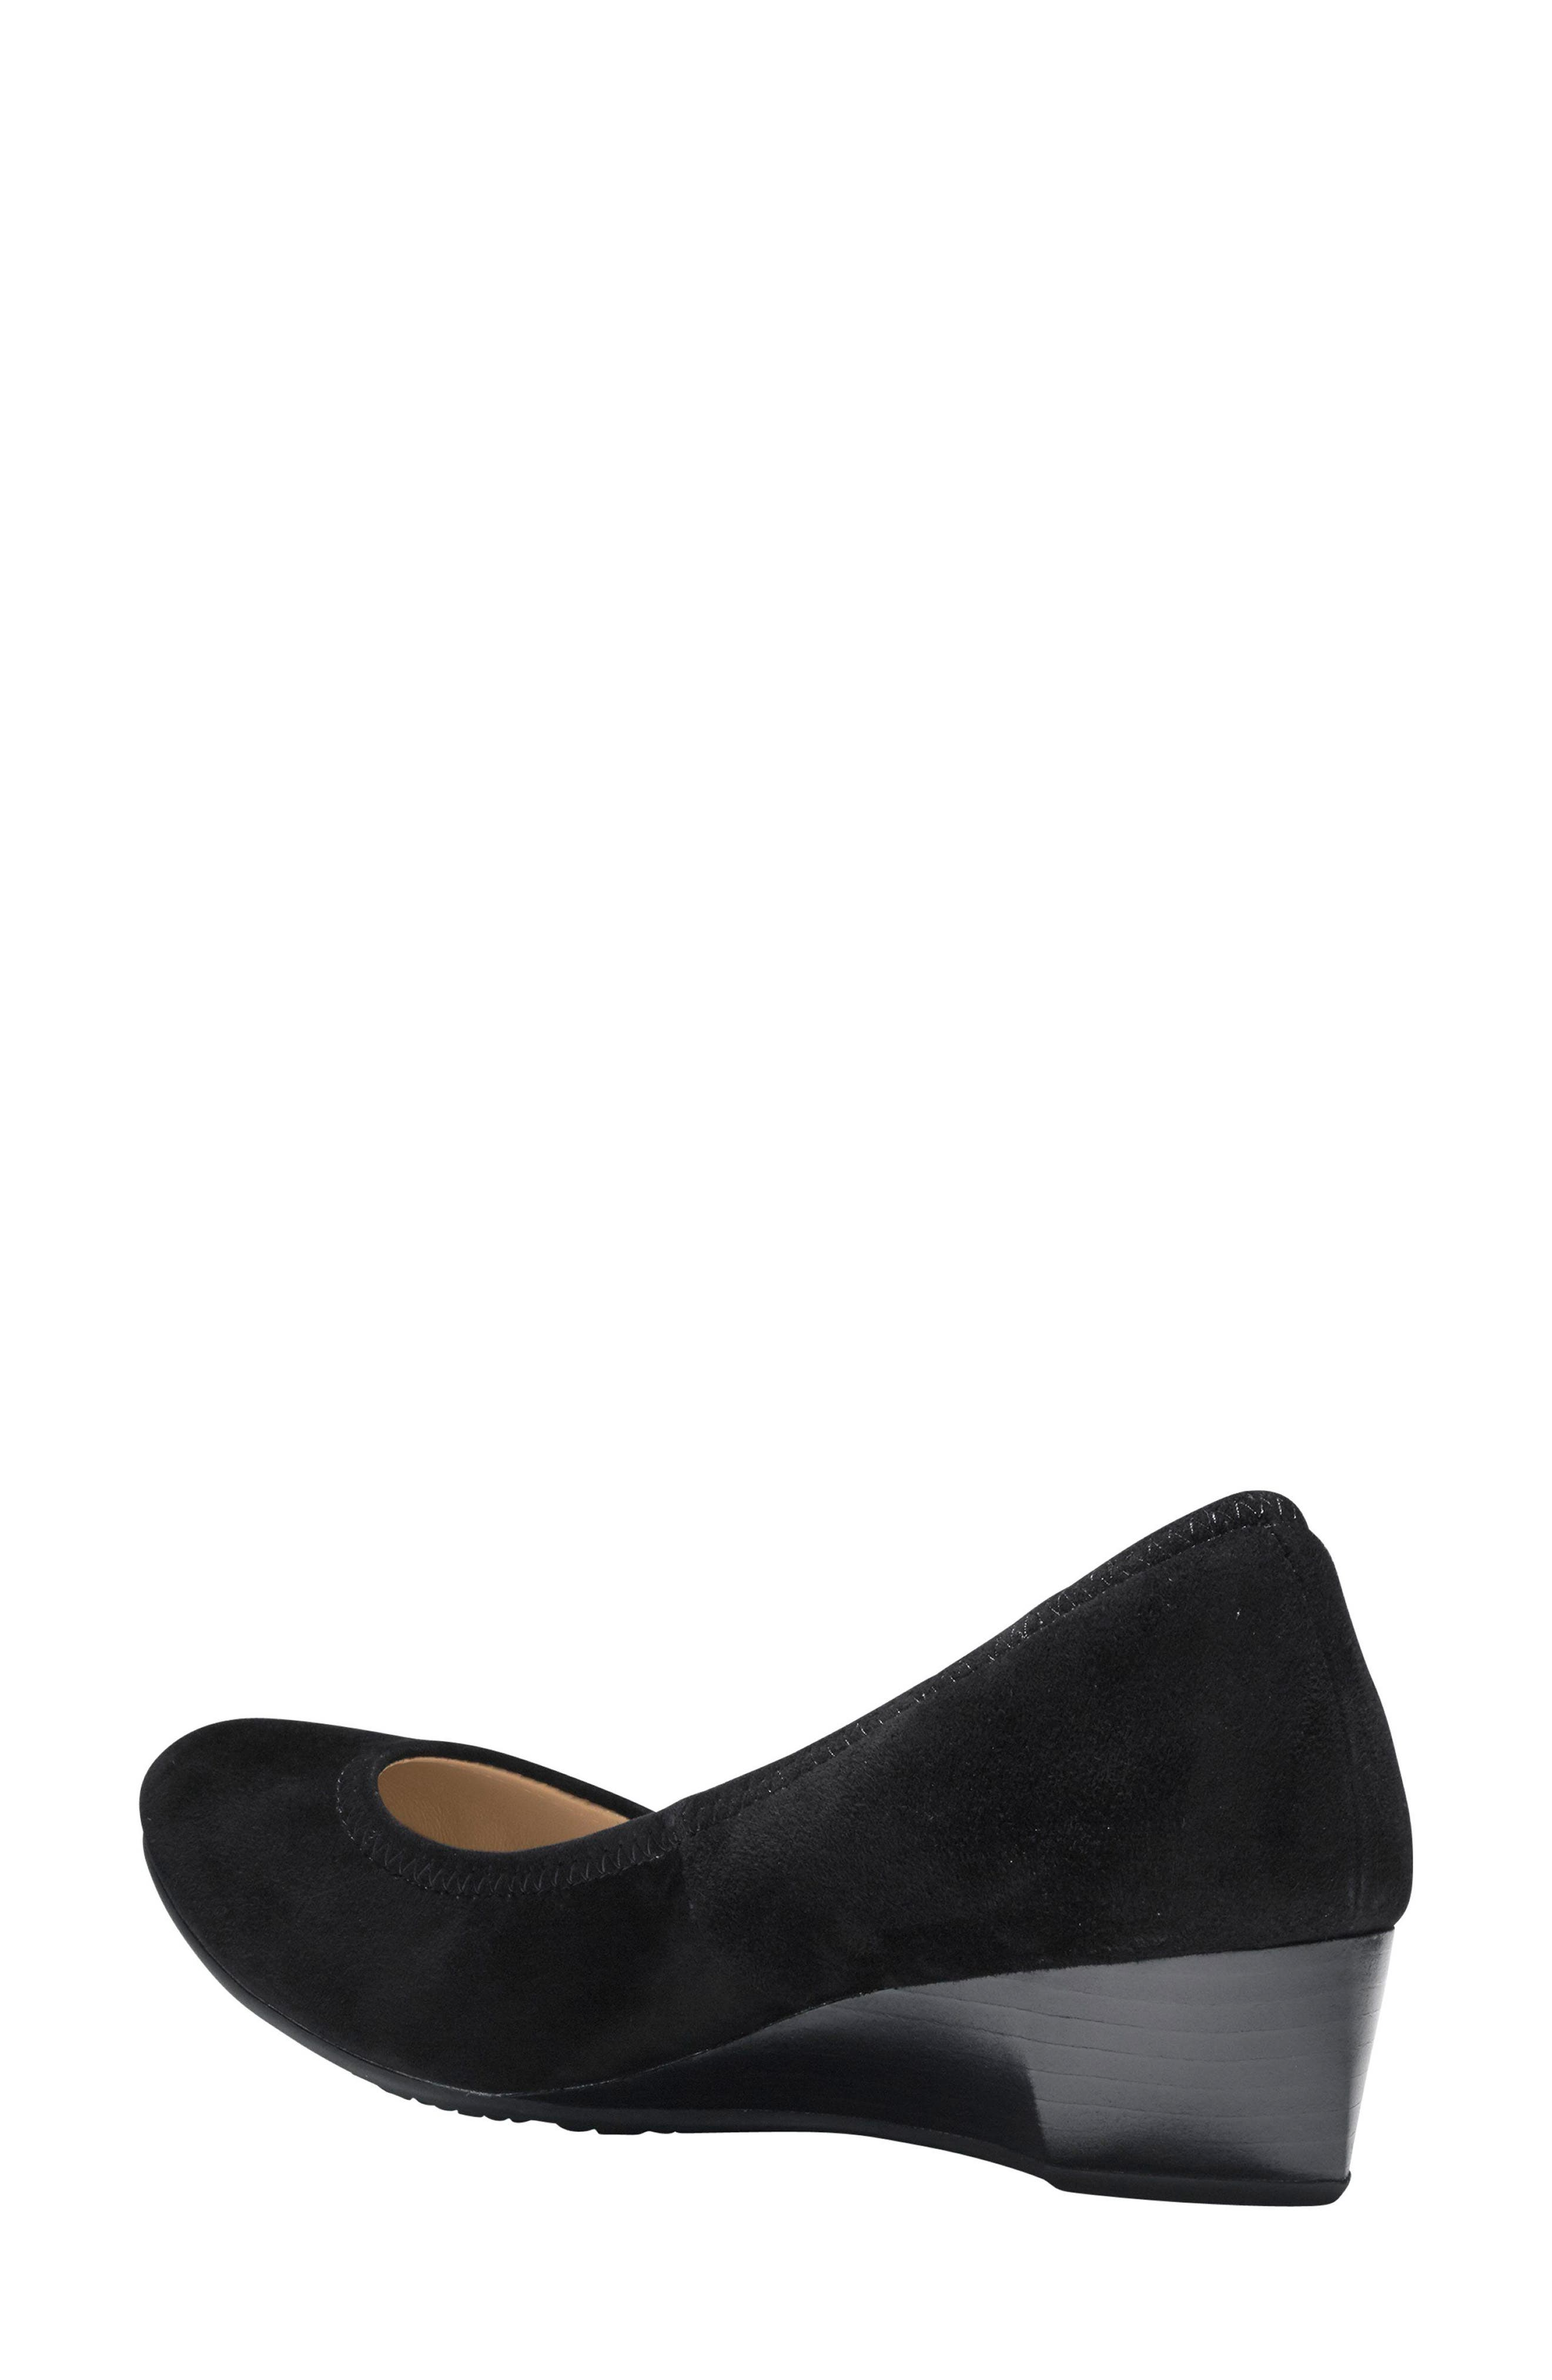 Sadie Wedge Pump,                             Alternate thumbnail 2, color,                             BLACK SUEDE